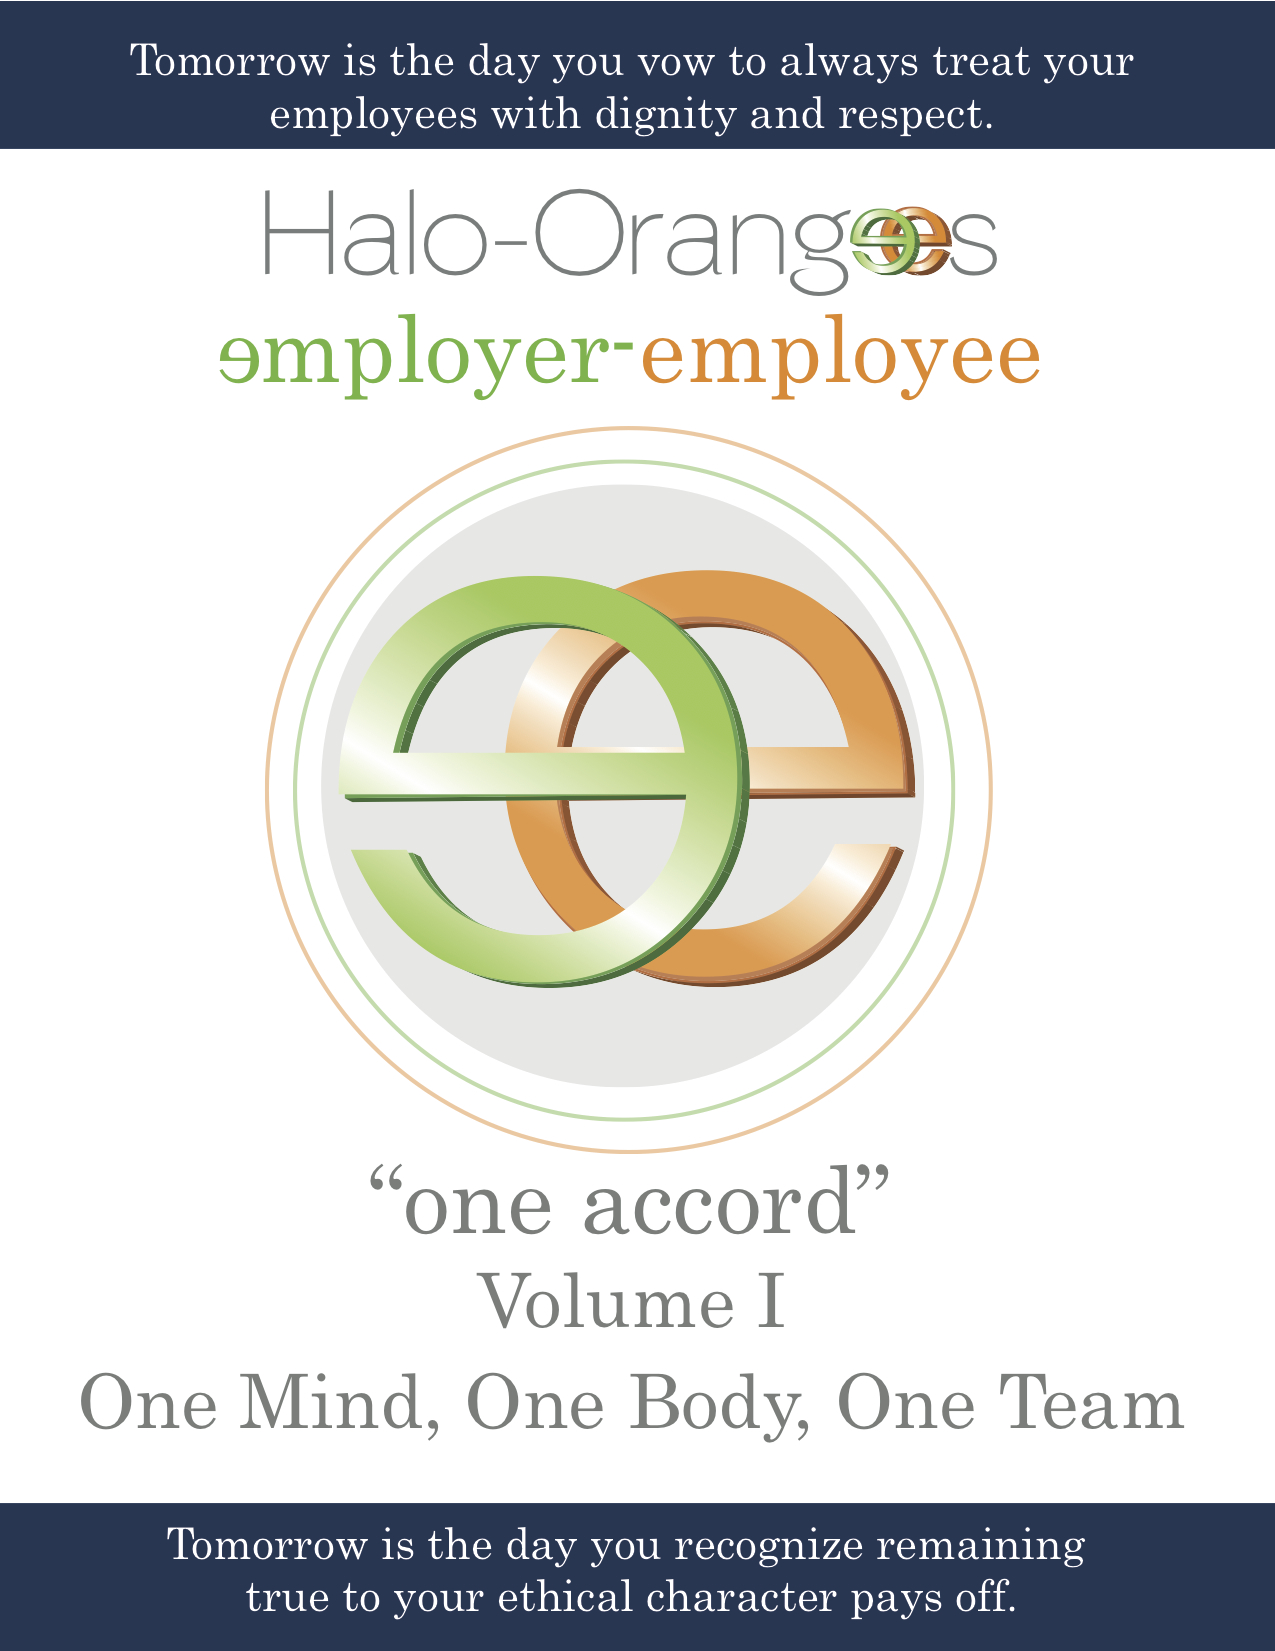 Halo-Orangees employer-employee one accord Volume I One Mind, One Body, One Team